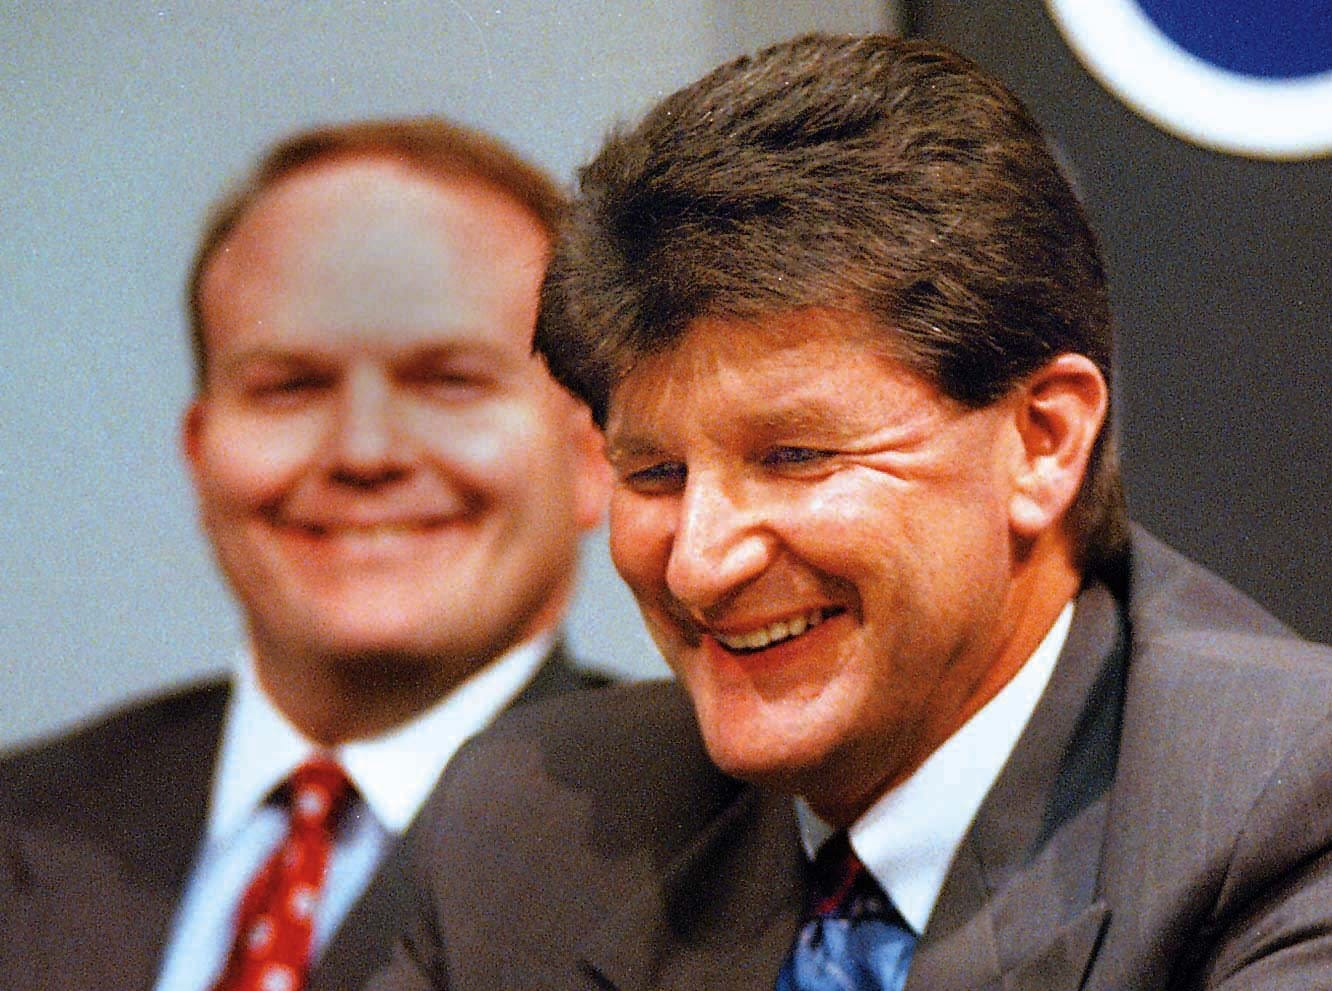 From 1996: Gary Dolphin of Dubuque was named play-by-play radio announcer for University of Iowa football and men's basketball games Friday. Behind him is Roger Gardner, vice president of Learfield Communications, which owns the games' broadcast rights.